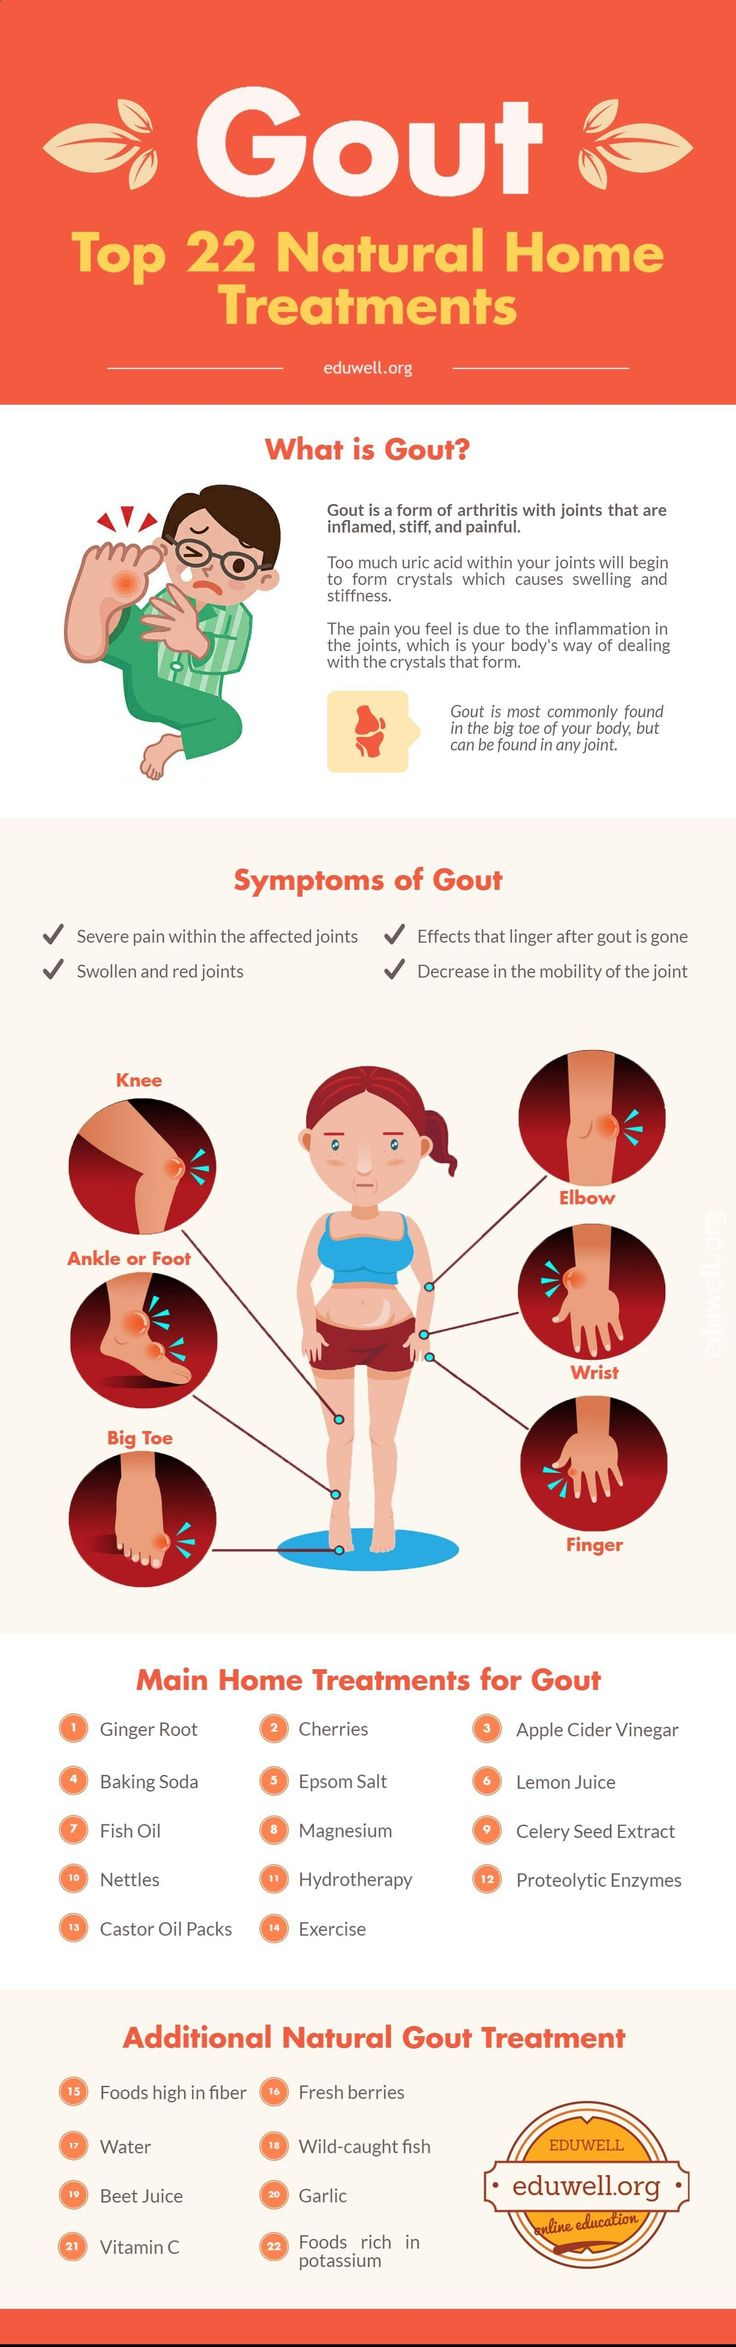 Top 22 Natural Home Treatments for Gout (Chart) - eduwell.org/... Health. Learn important facts about gout, including its symptoms, natural treatment options. DIY Remedies for Gout Pain.